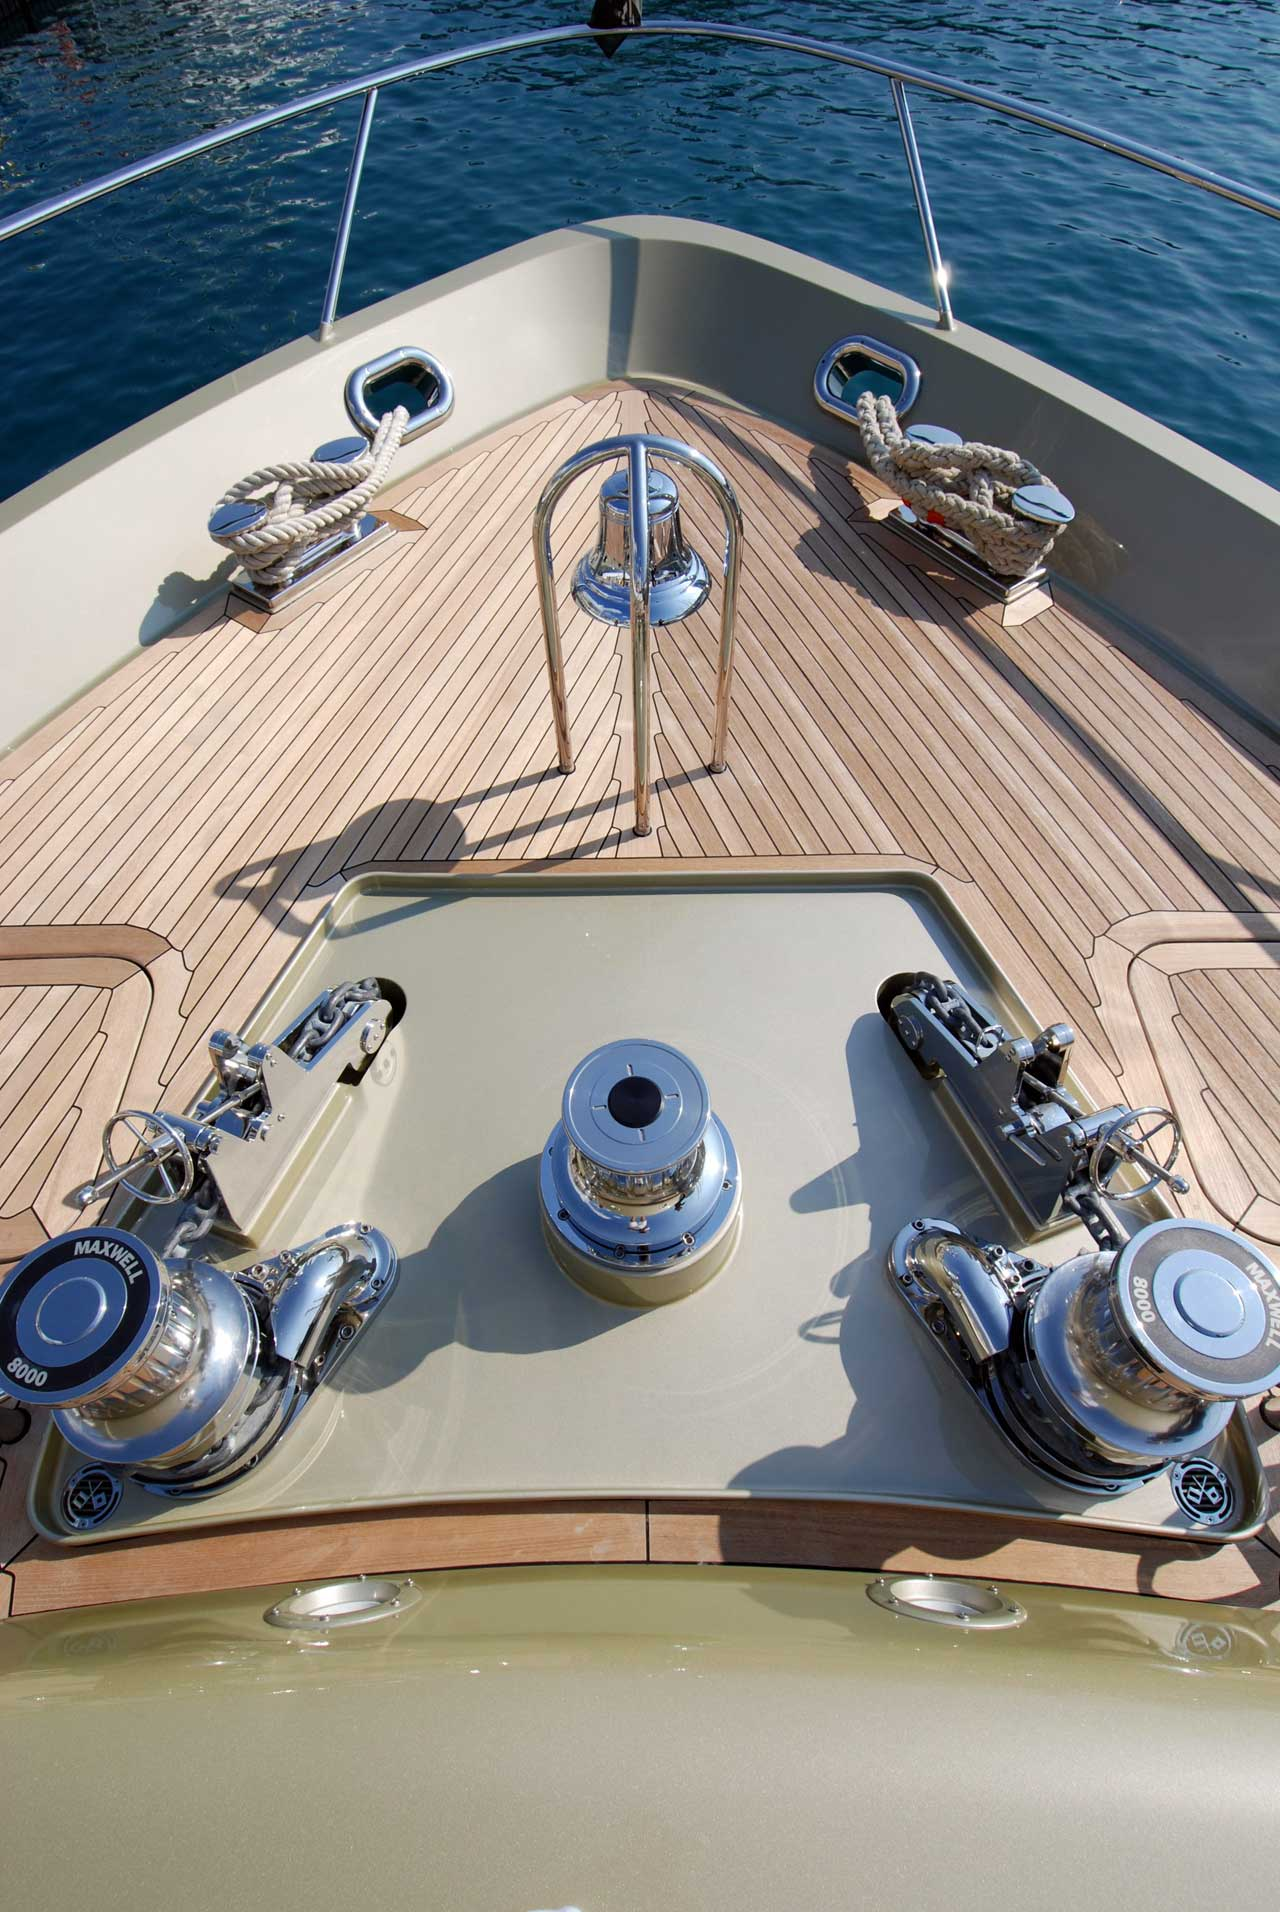 Favoring sustainable yachting practices